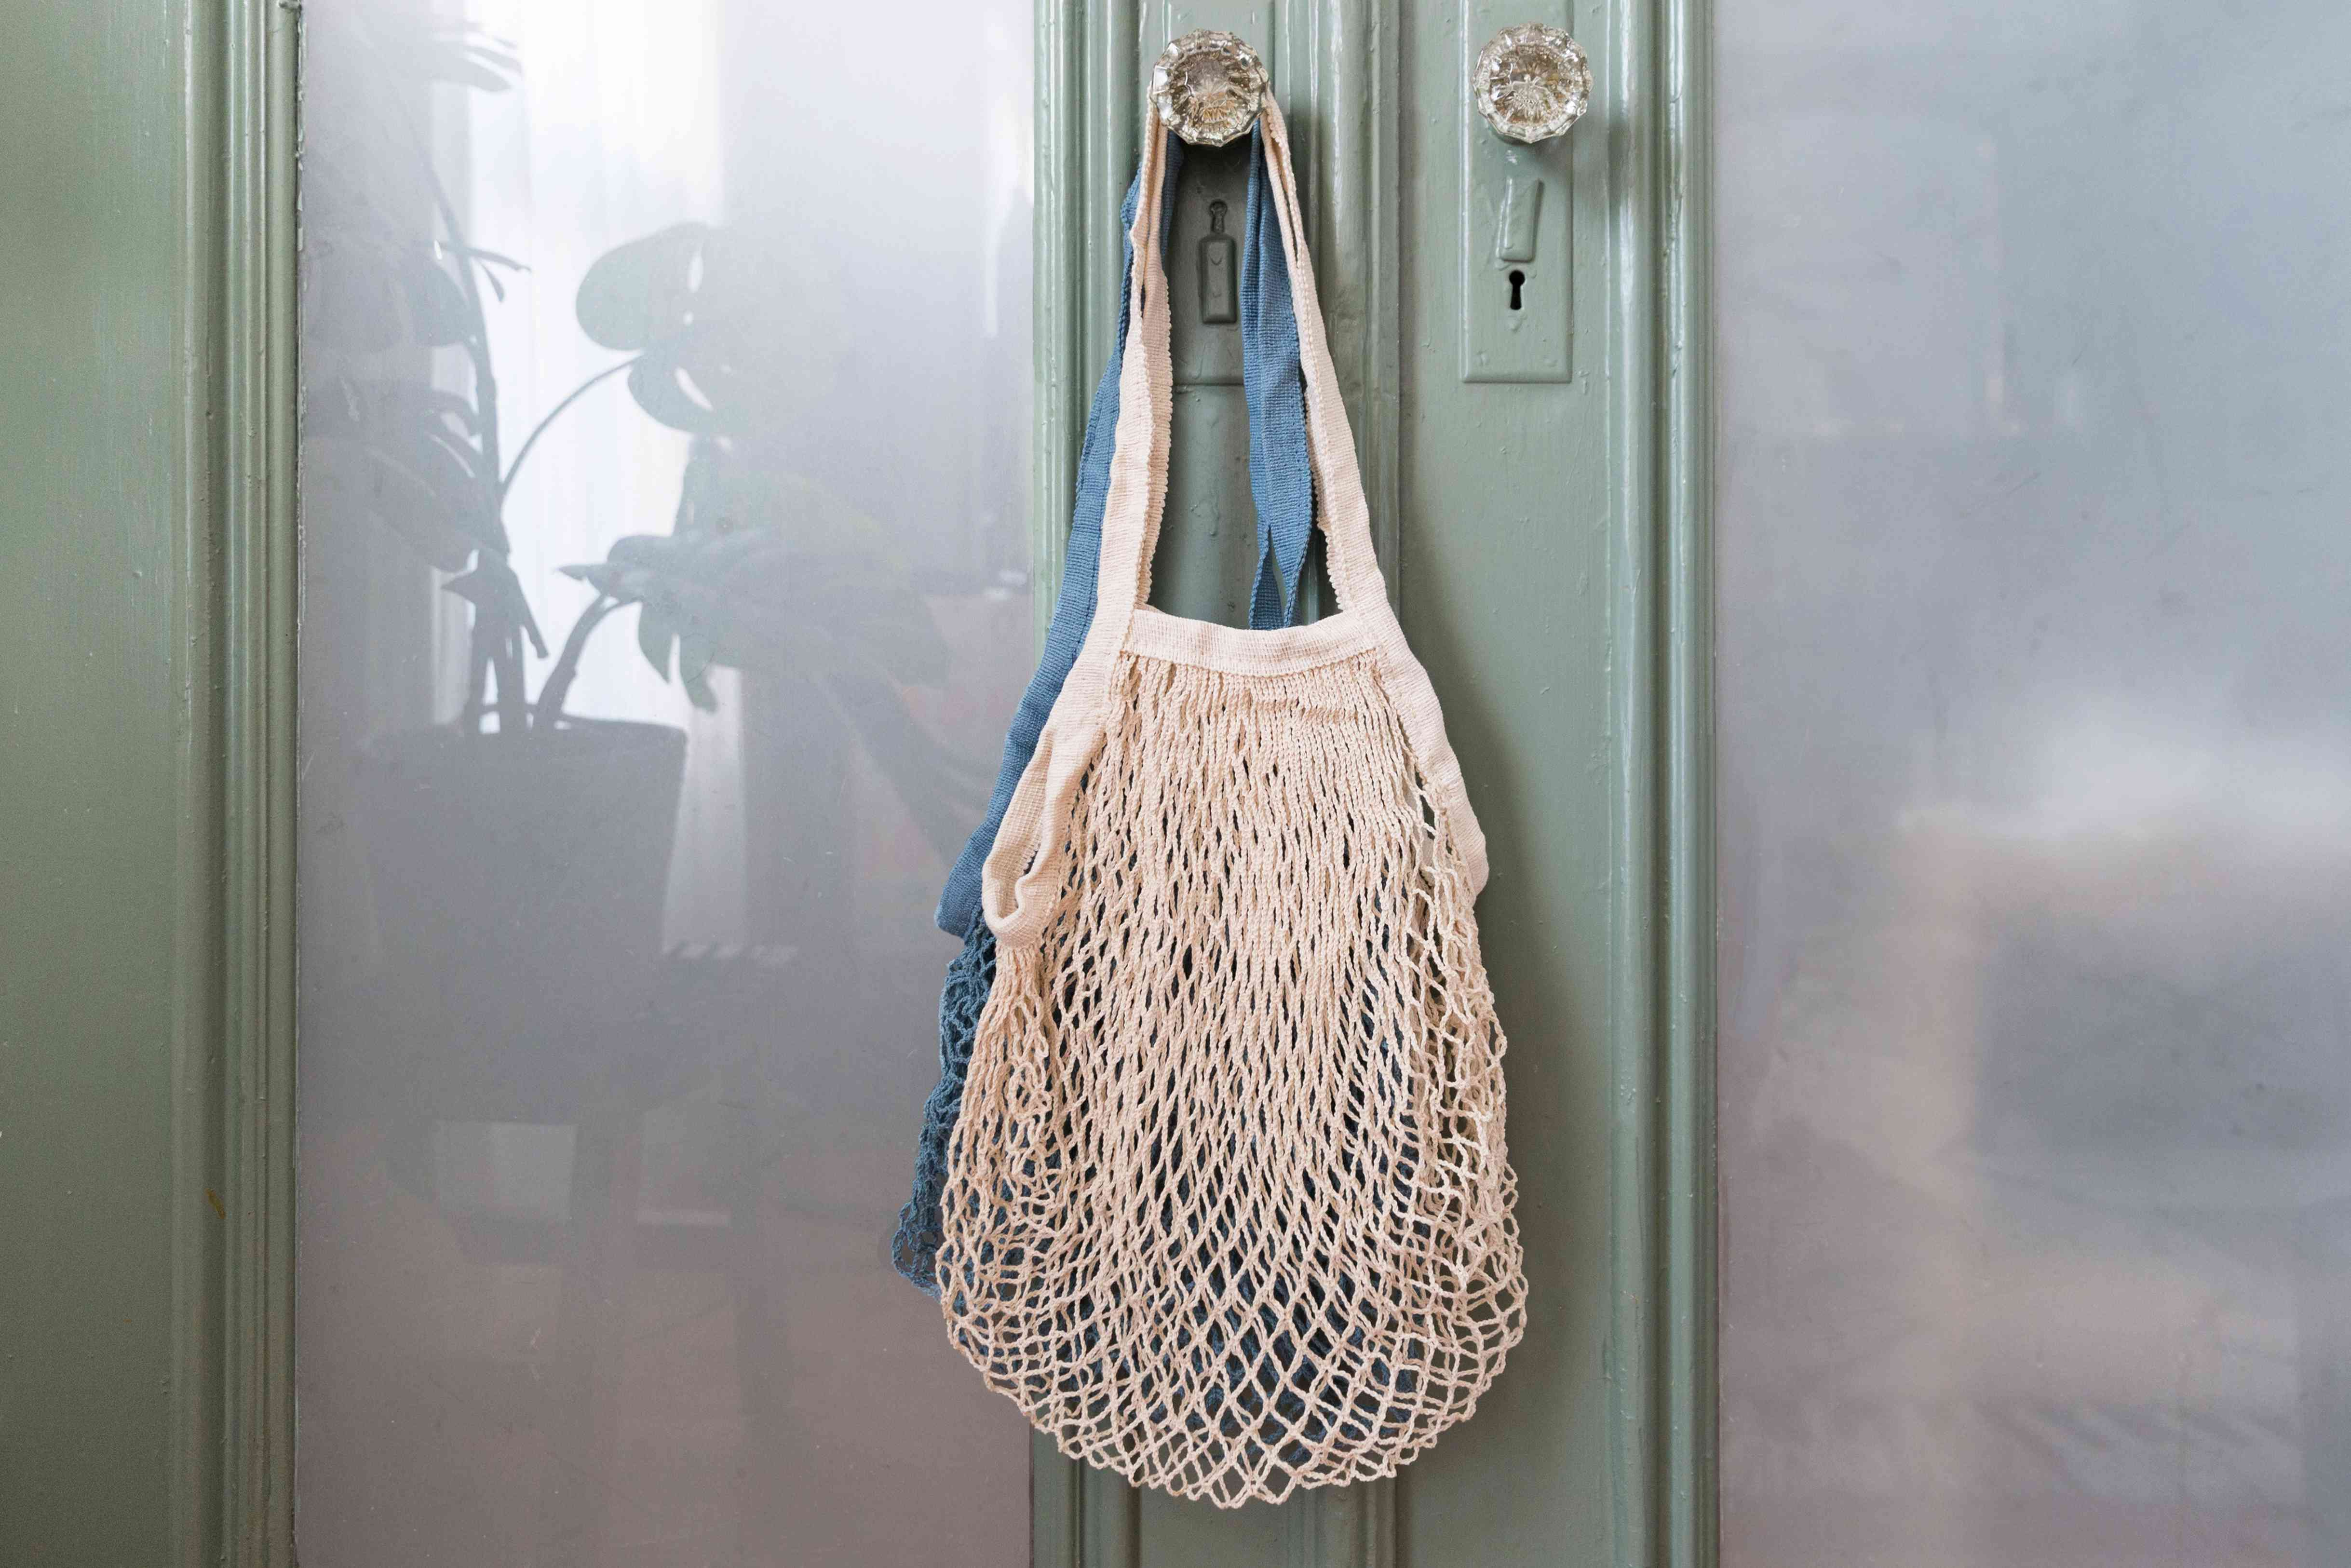 leaving reusable shopping bags on the door handle